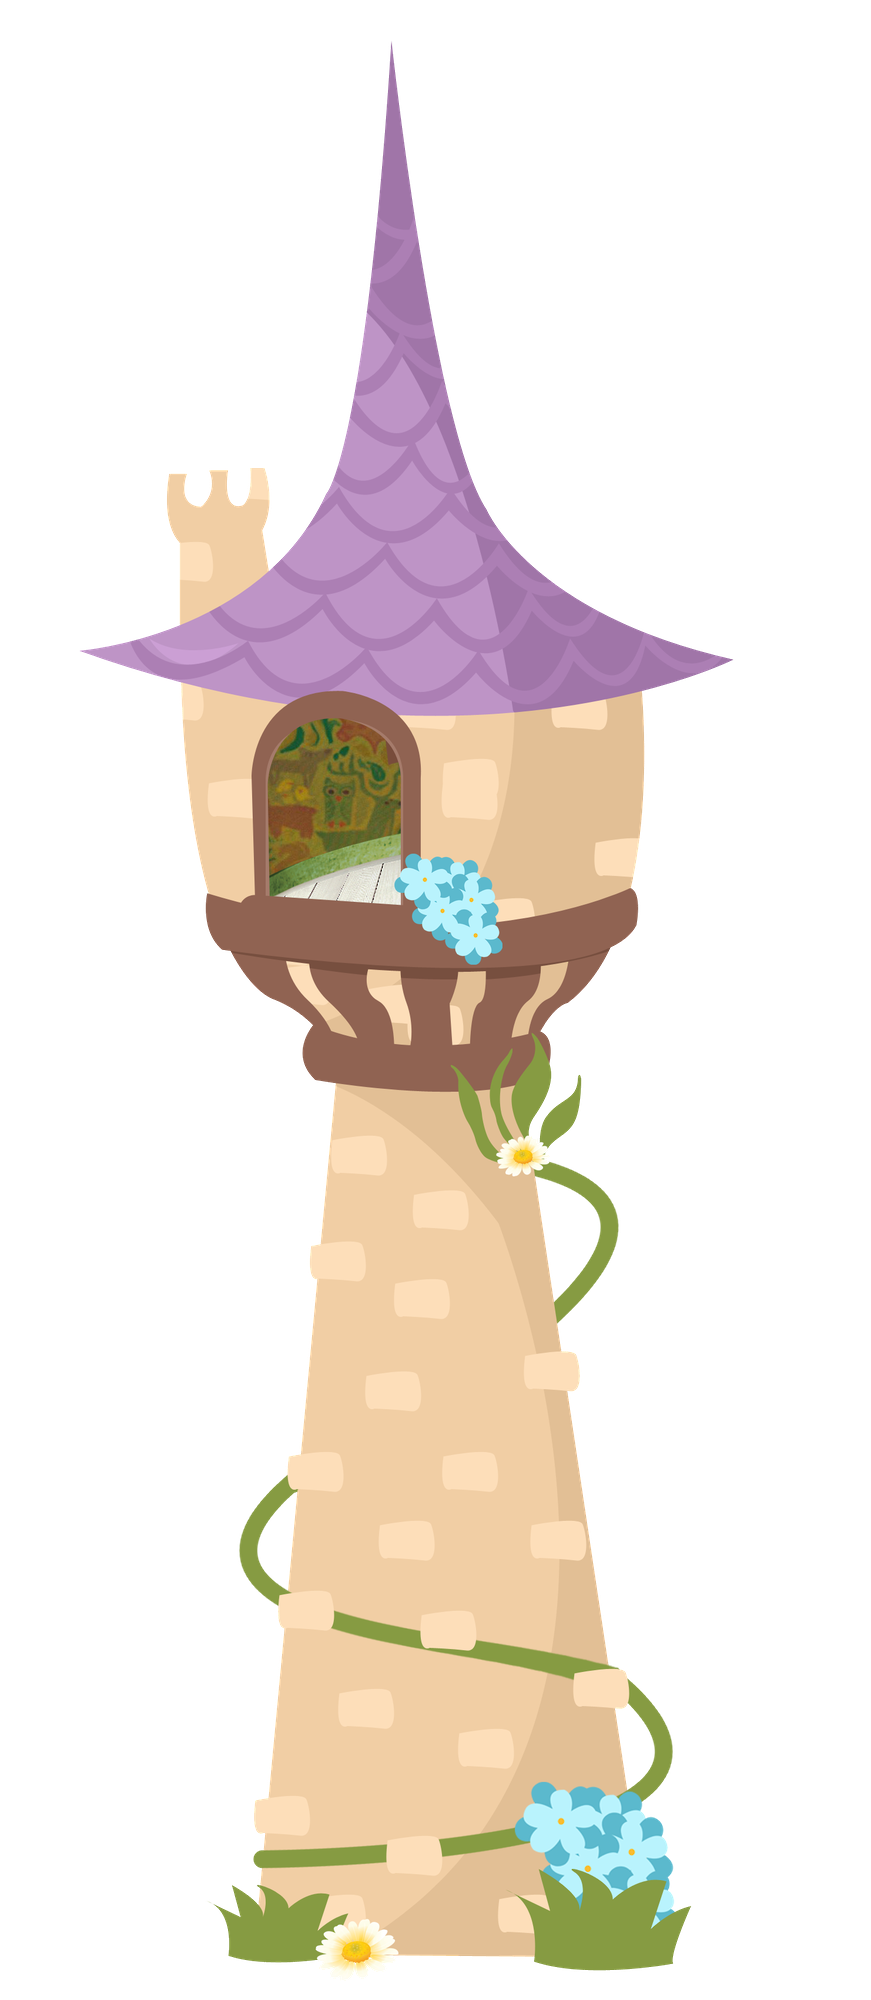 Rapunzel tower clipart picture library download Rapunzel tower clipart clipart images gallery for free ... picture library download